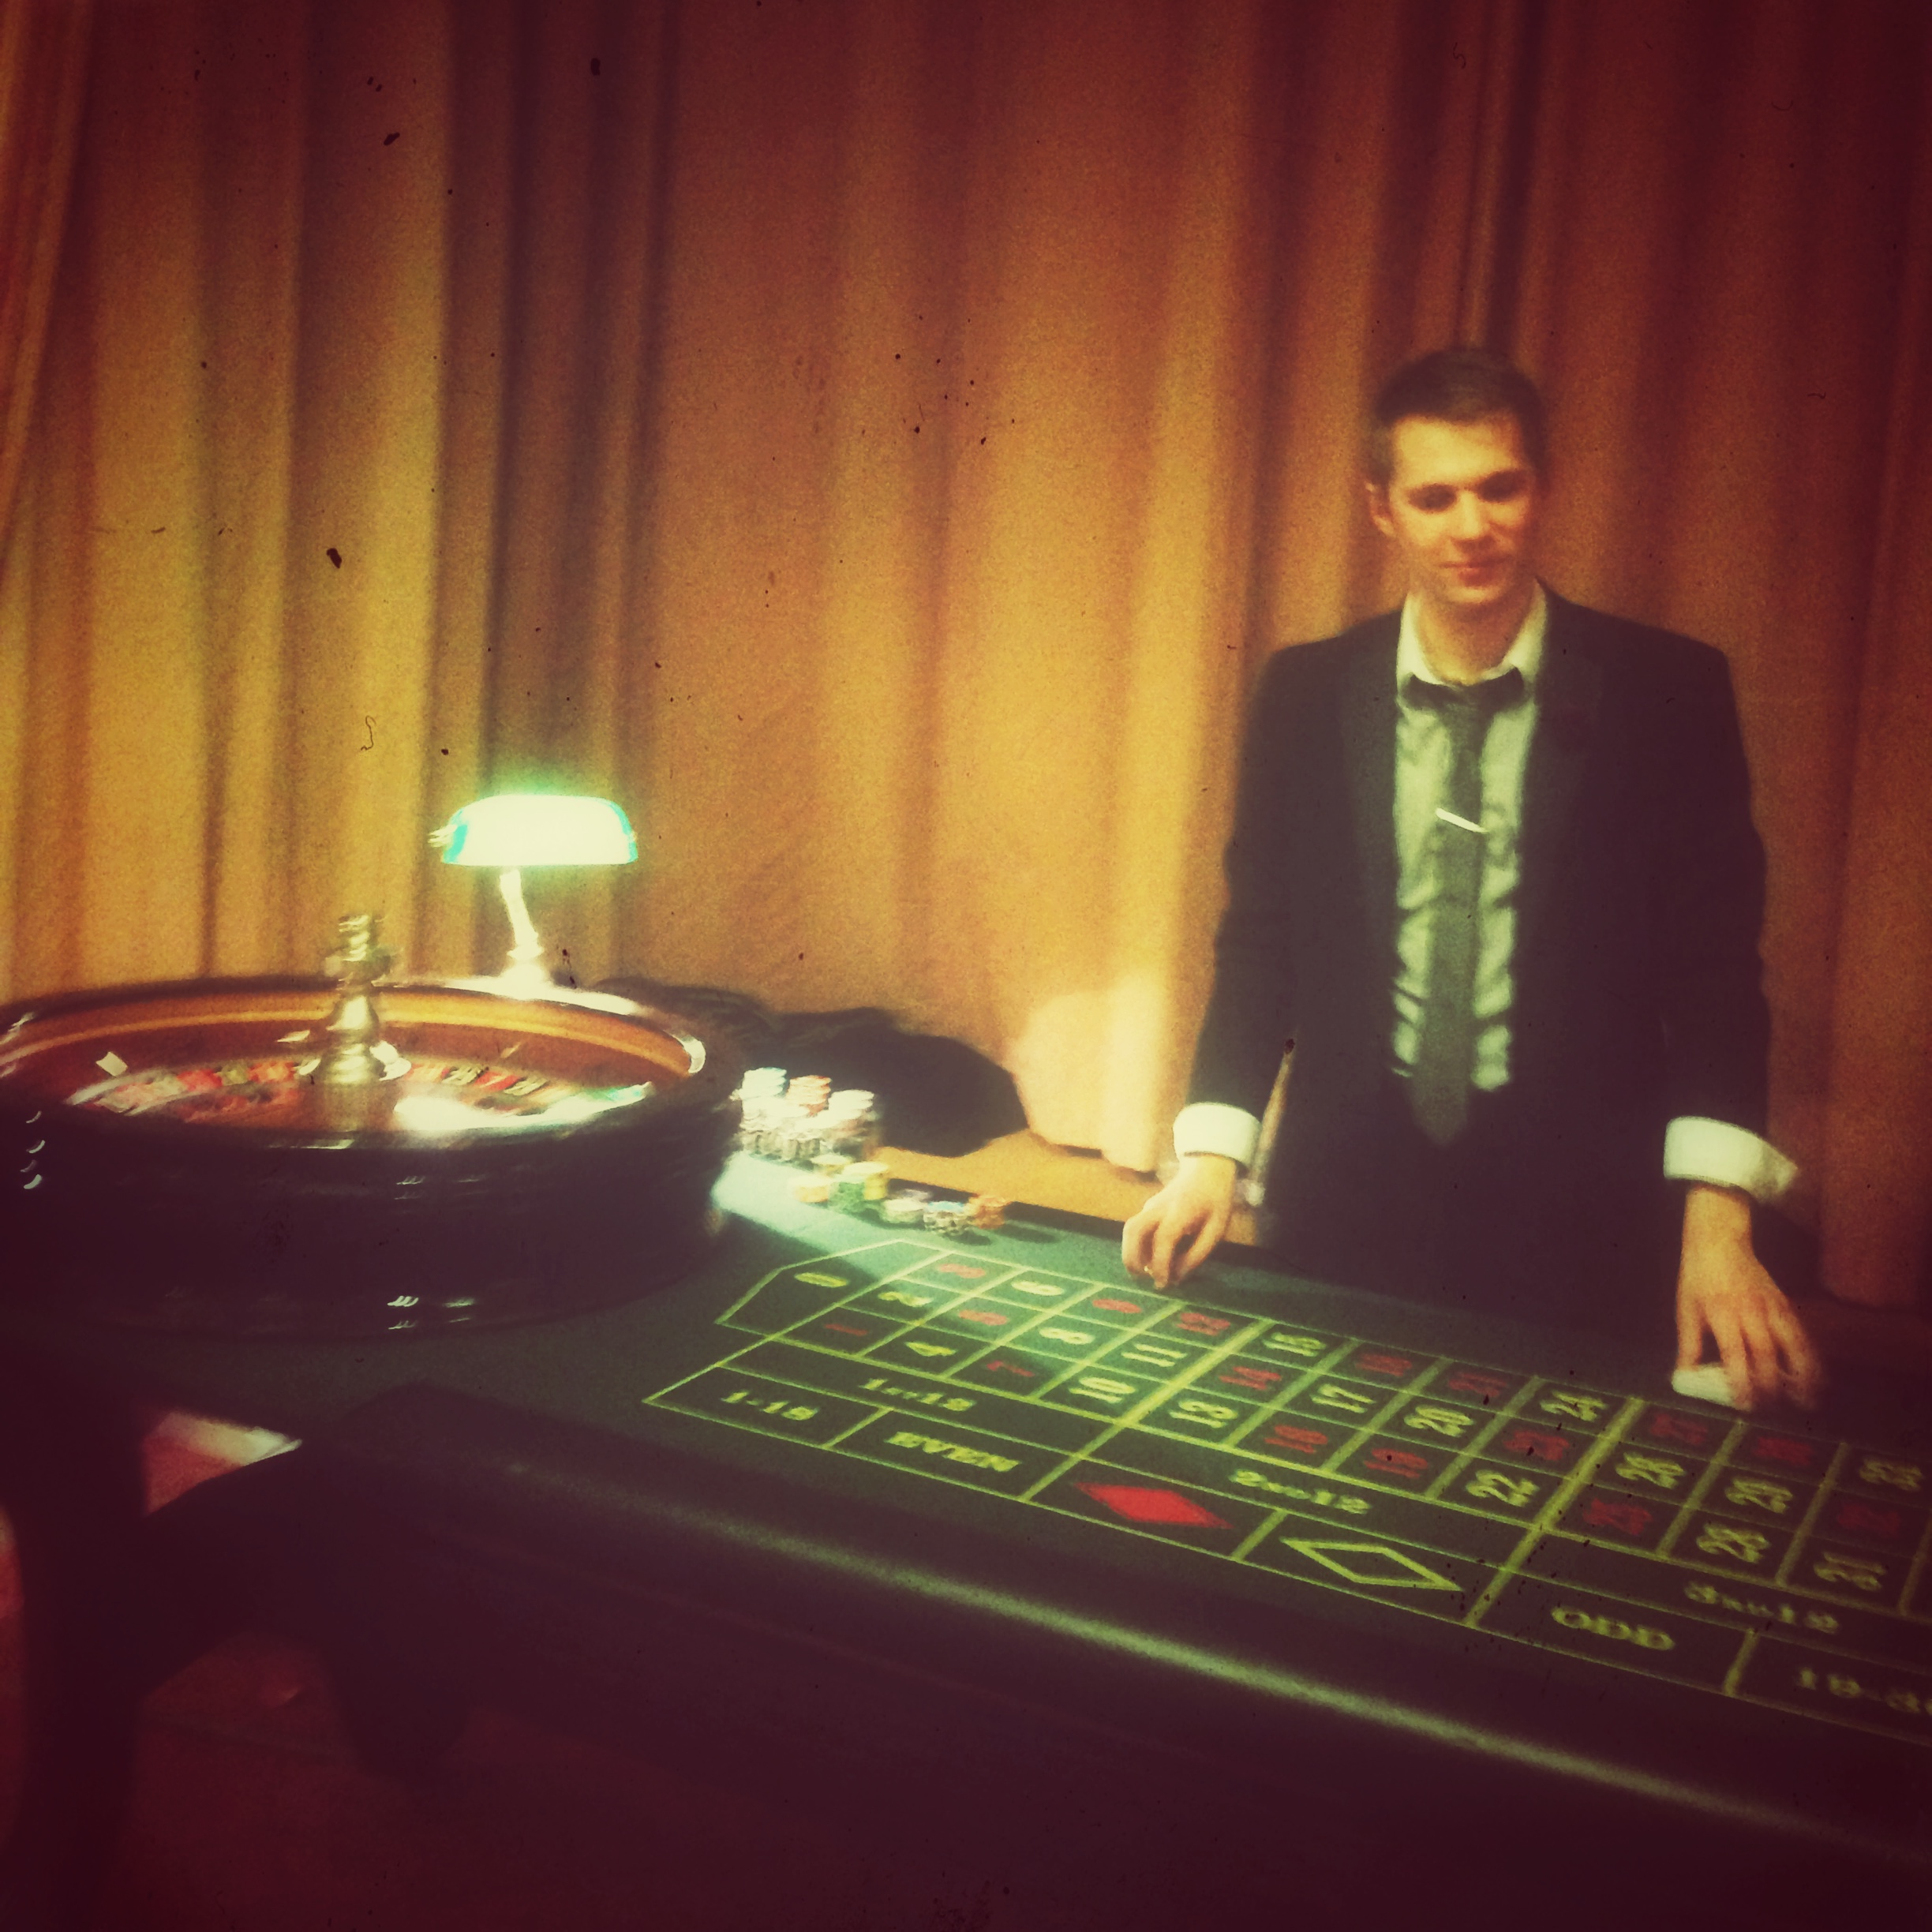 I wouldn't gamble with this croupier